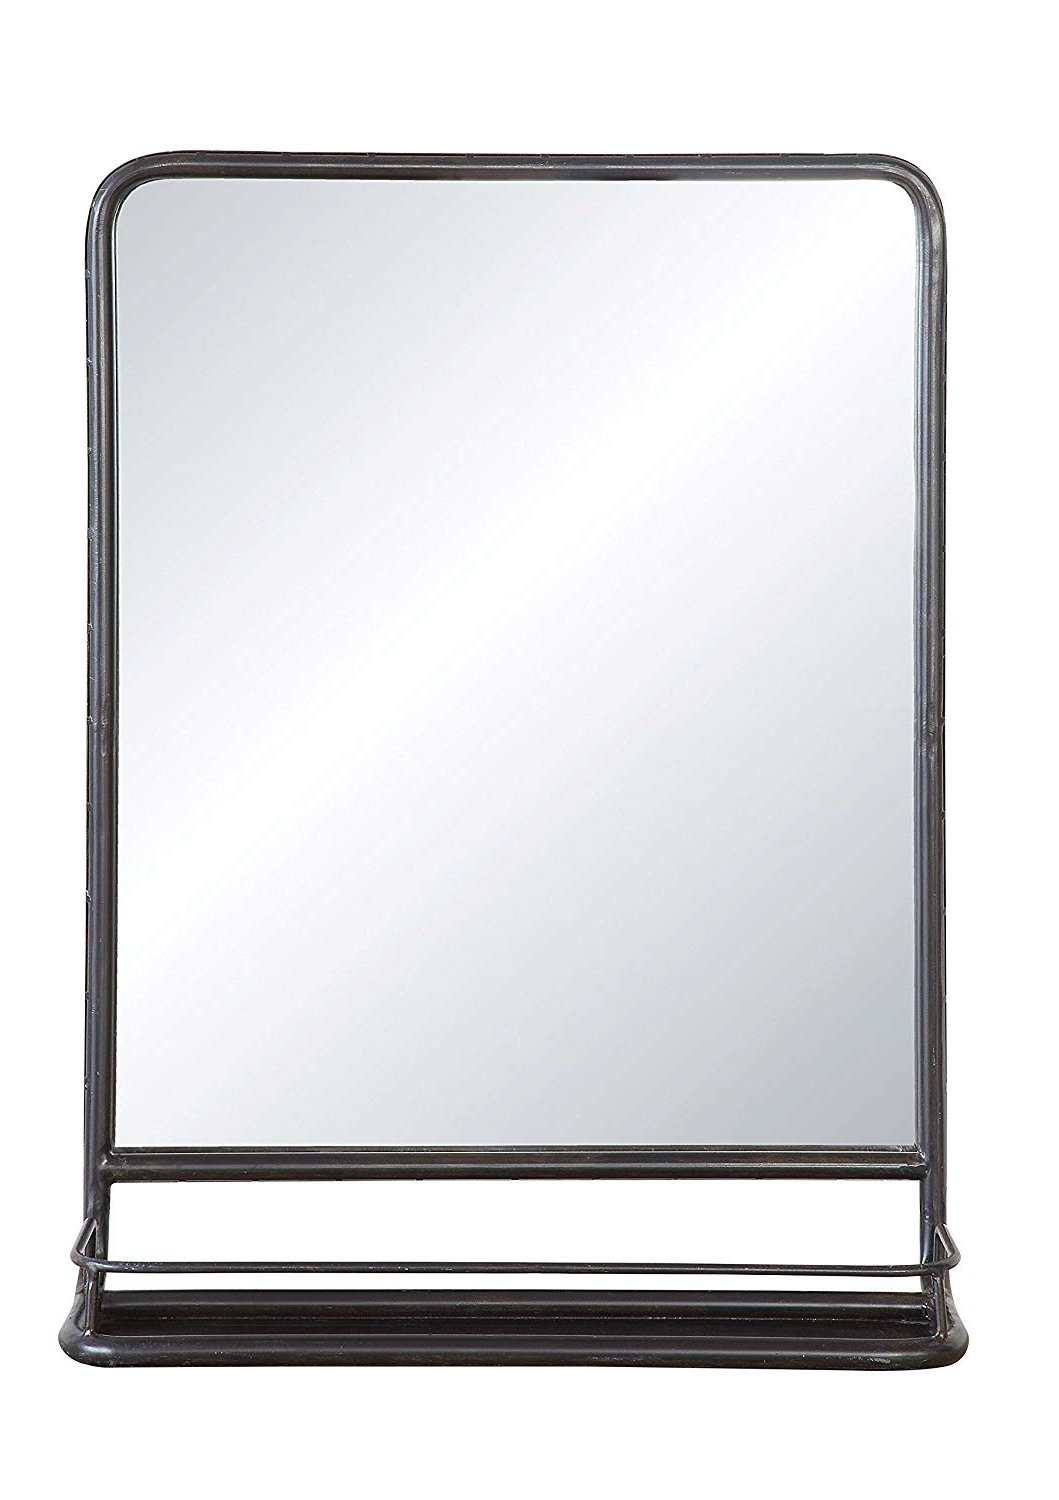 Best And Newest Metal Frame Wall Mirrors Within Creative Co Op Rectangle Metal Framed Wall Mirror With Shelf, Single Vanity, Black (View 7 of 20)